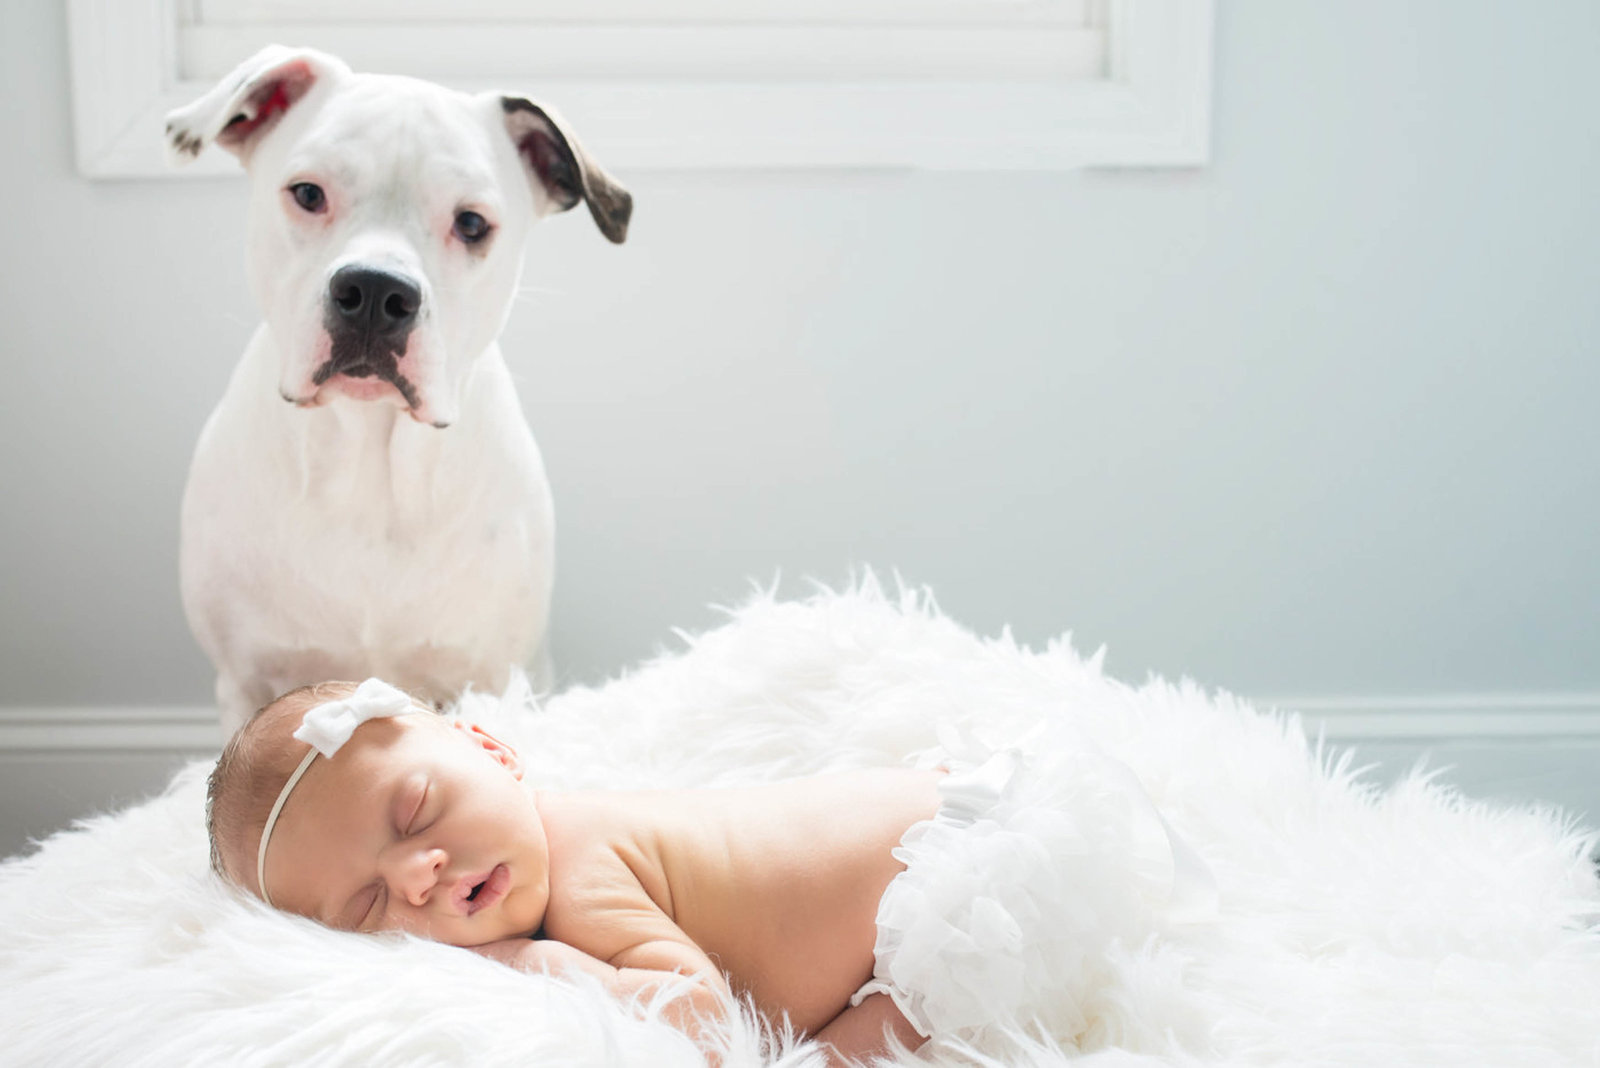 Dog watching over newborn during lifestyle session at home